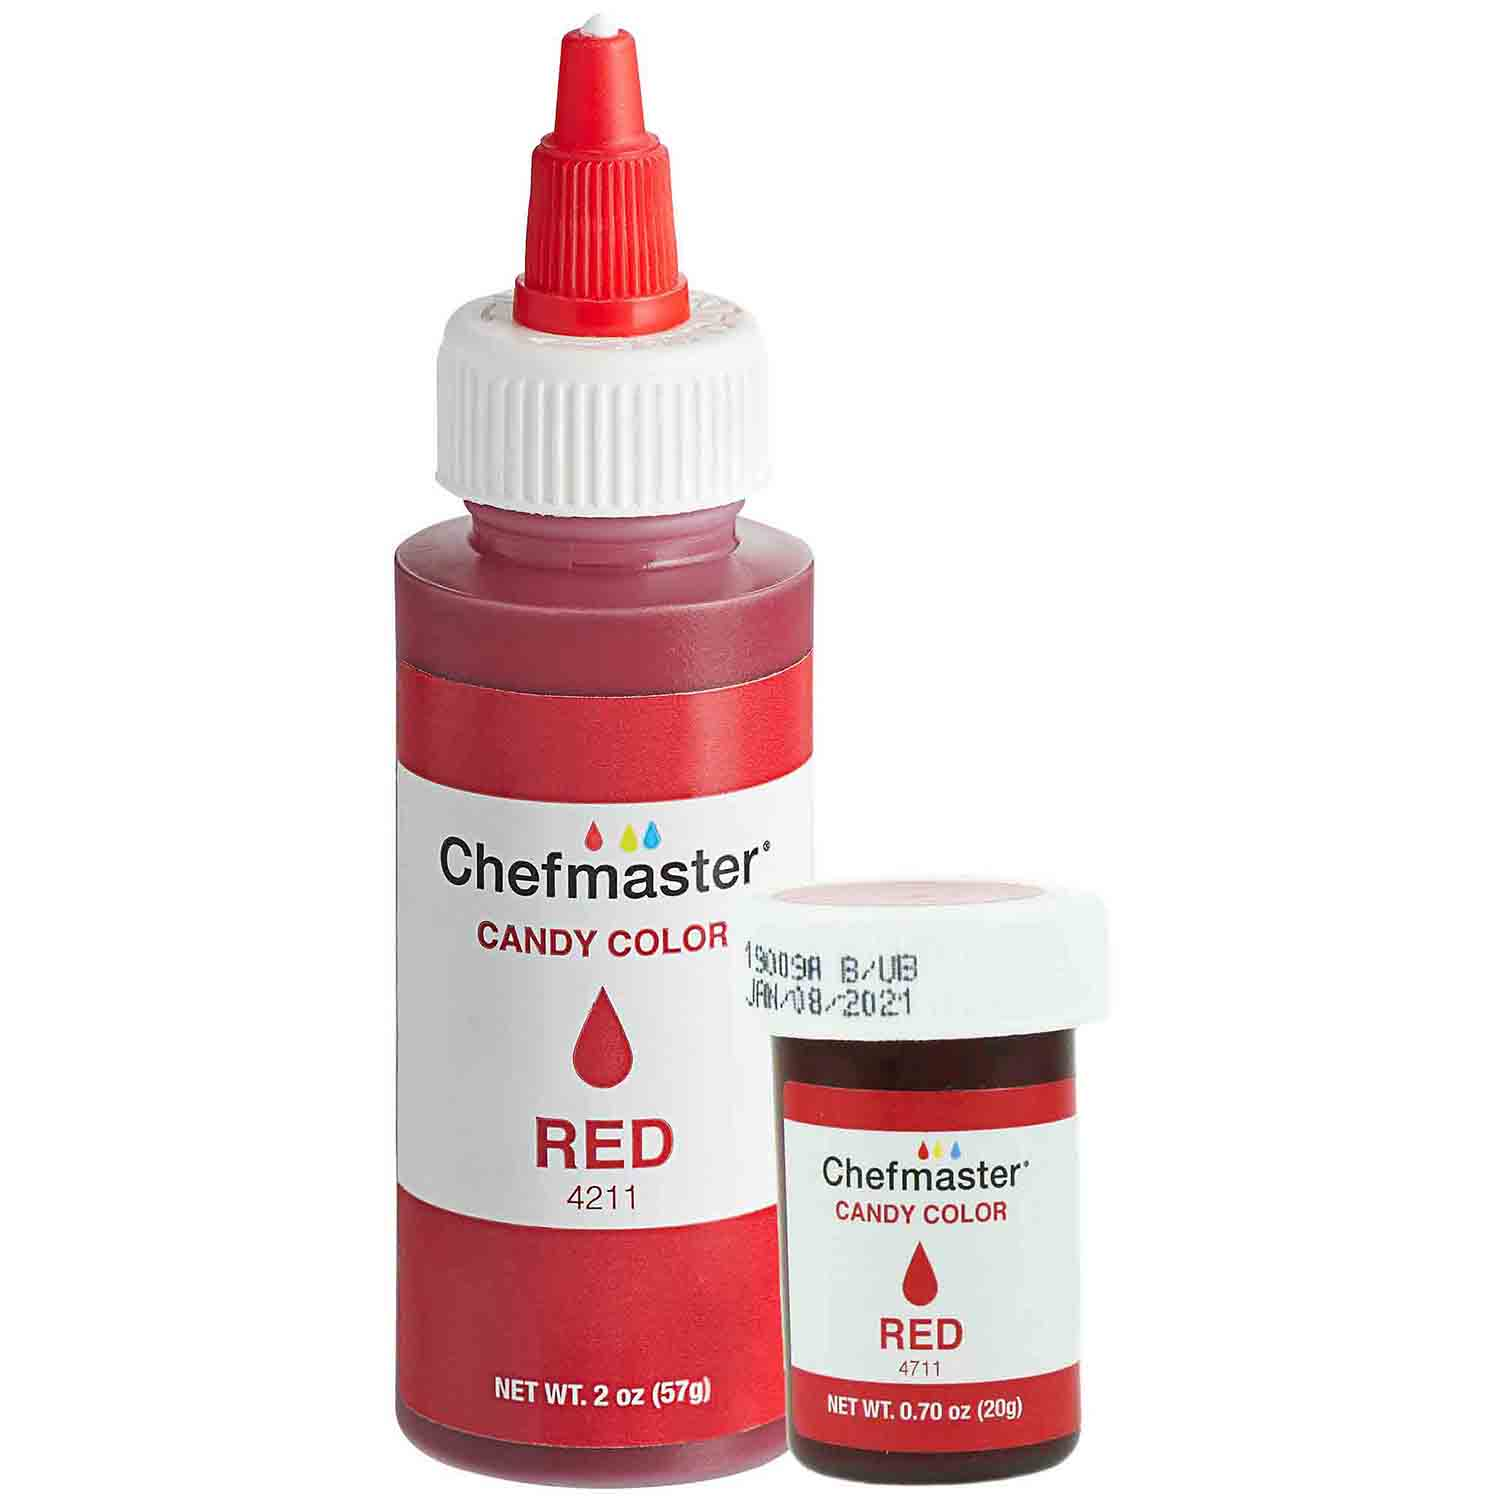 Liquid Red Chefmaster Candy Color (Old Item # 41-3282)